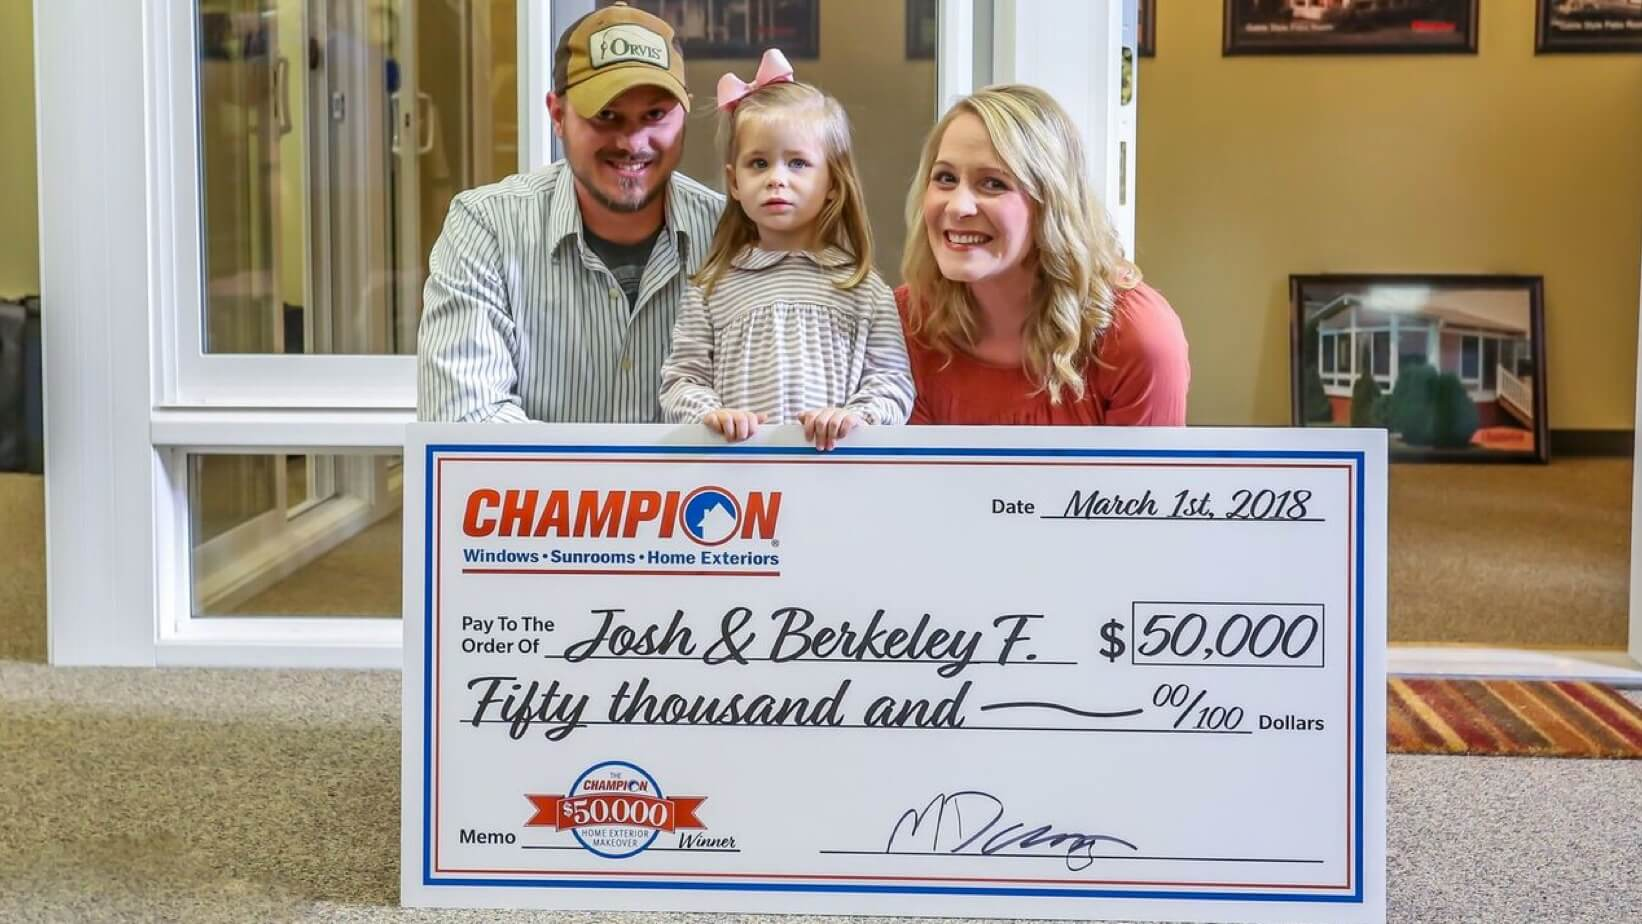 Champion contest winners with check